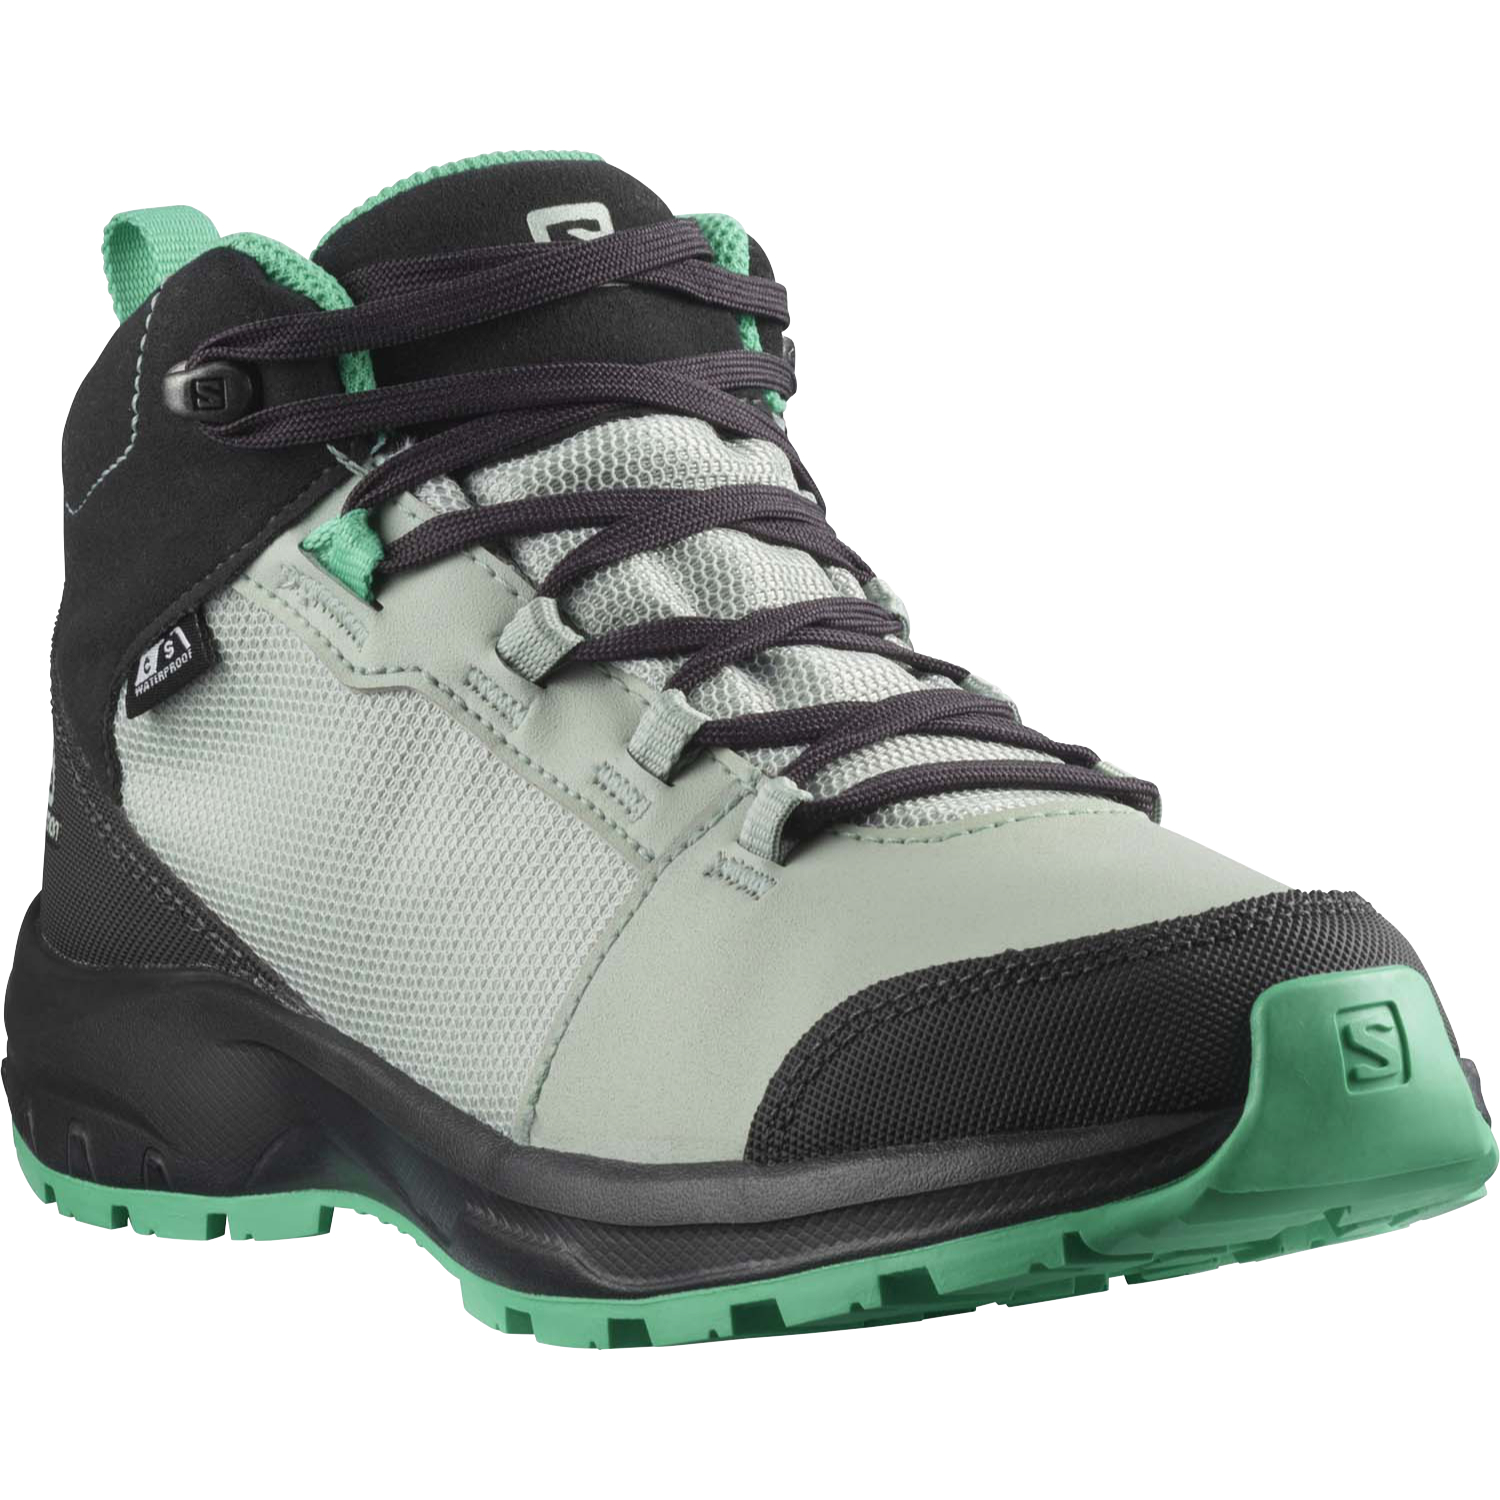 Salomon OUTward CSWP Jr - Phantom Aqua Gray Mint